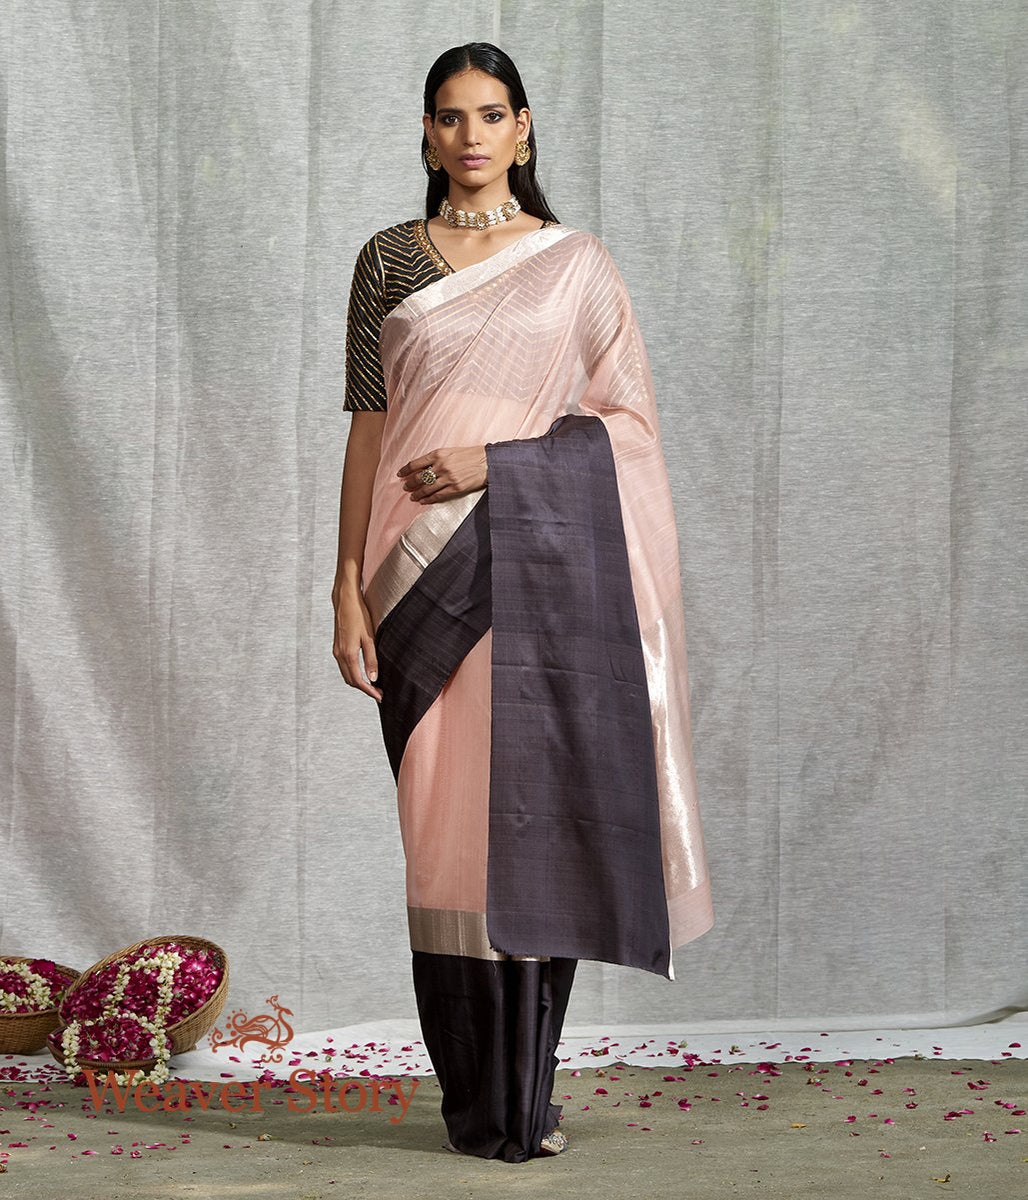 Handwoven Peach Plain Saree with Black Mushroo Border